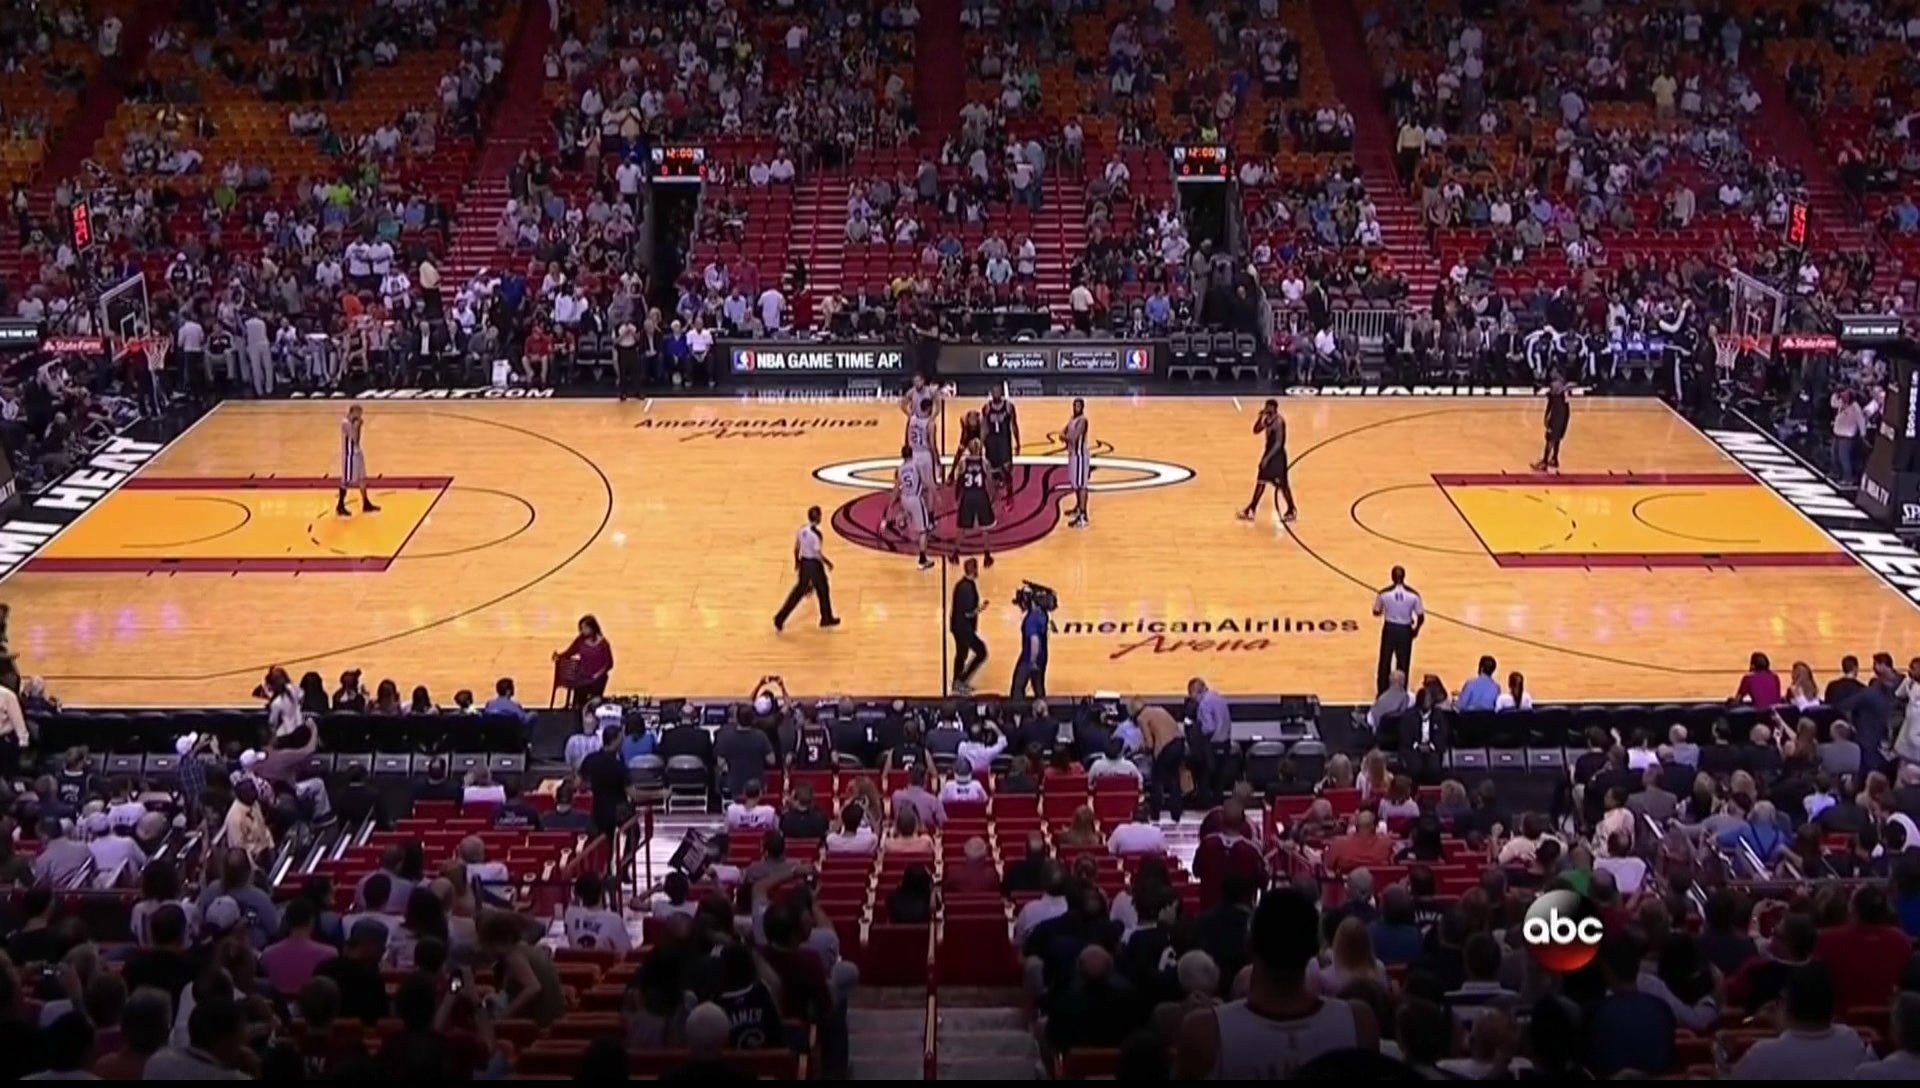 Miami Heat fans aren't ready for early games yet ...